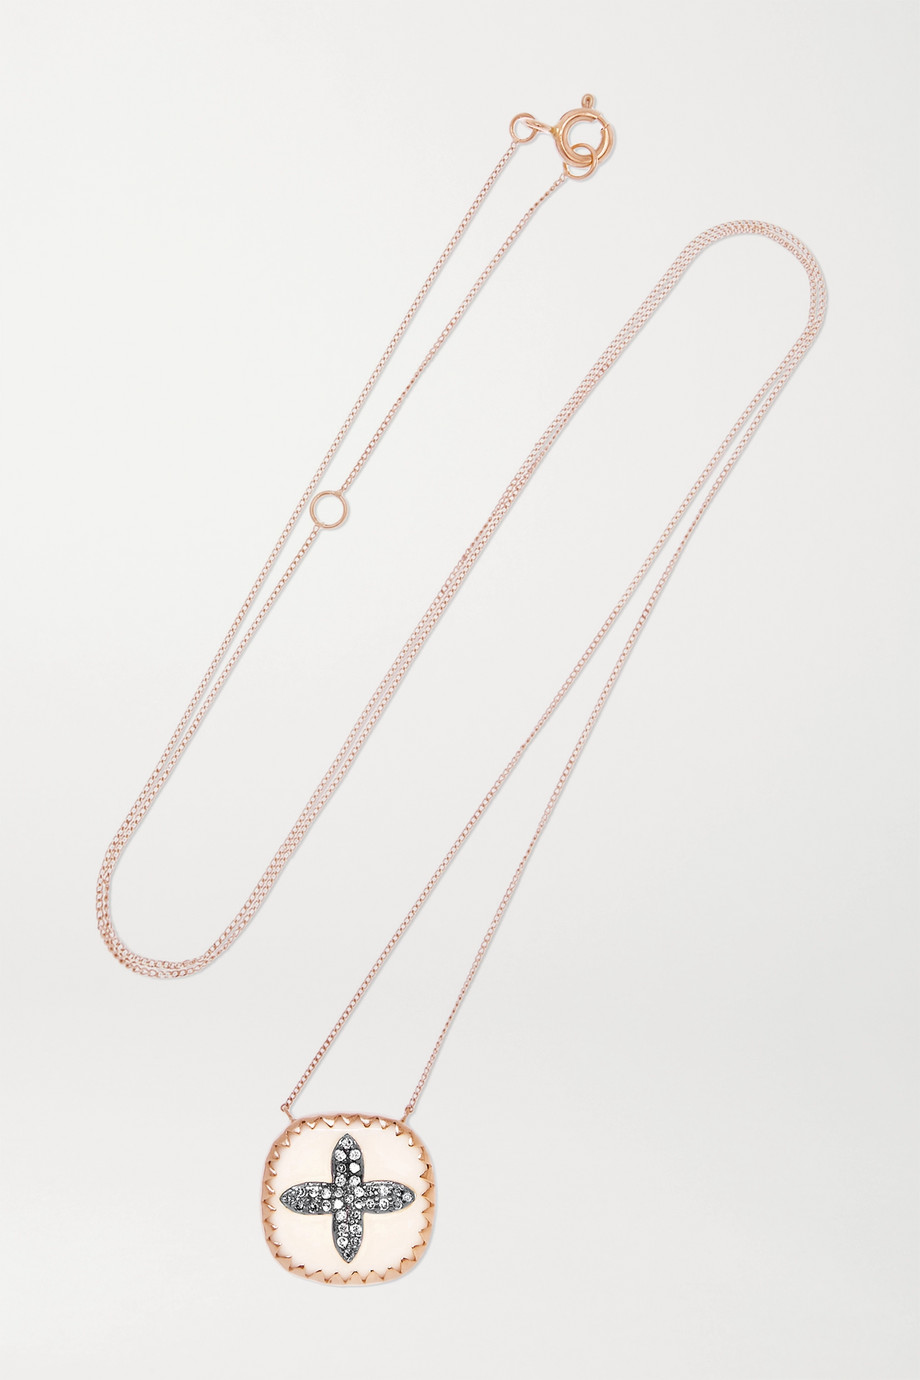 PASCALE MONVOISIN Bowie 9-karat rose gold, sterling silver, resin and diamond necklace